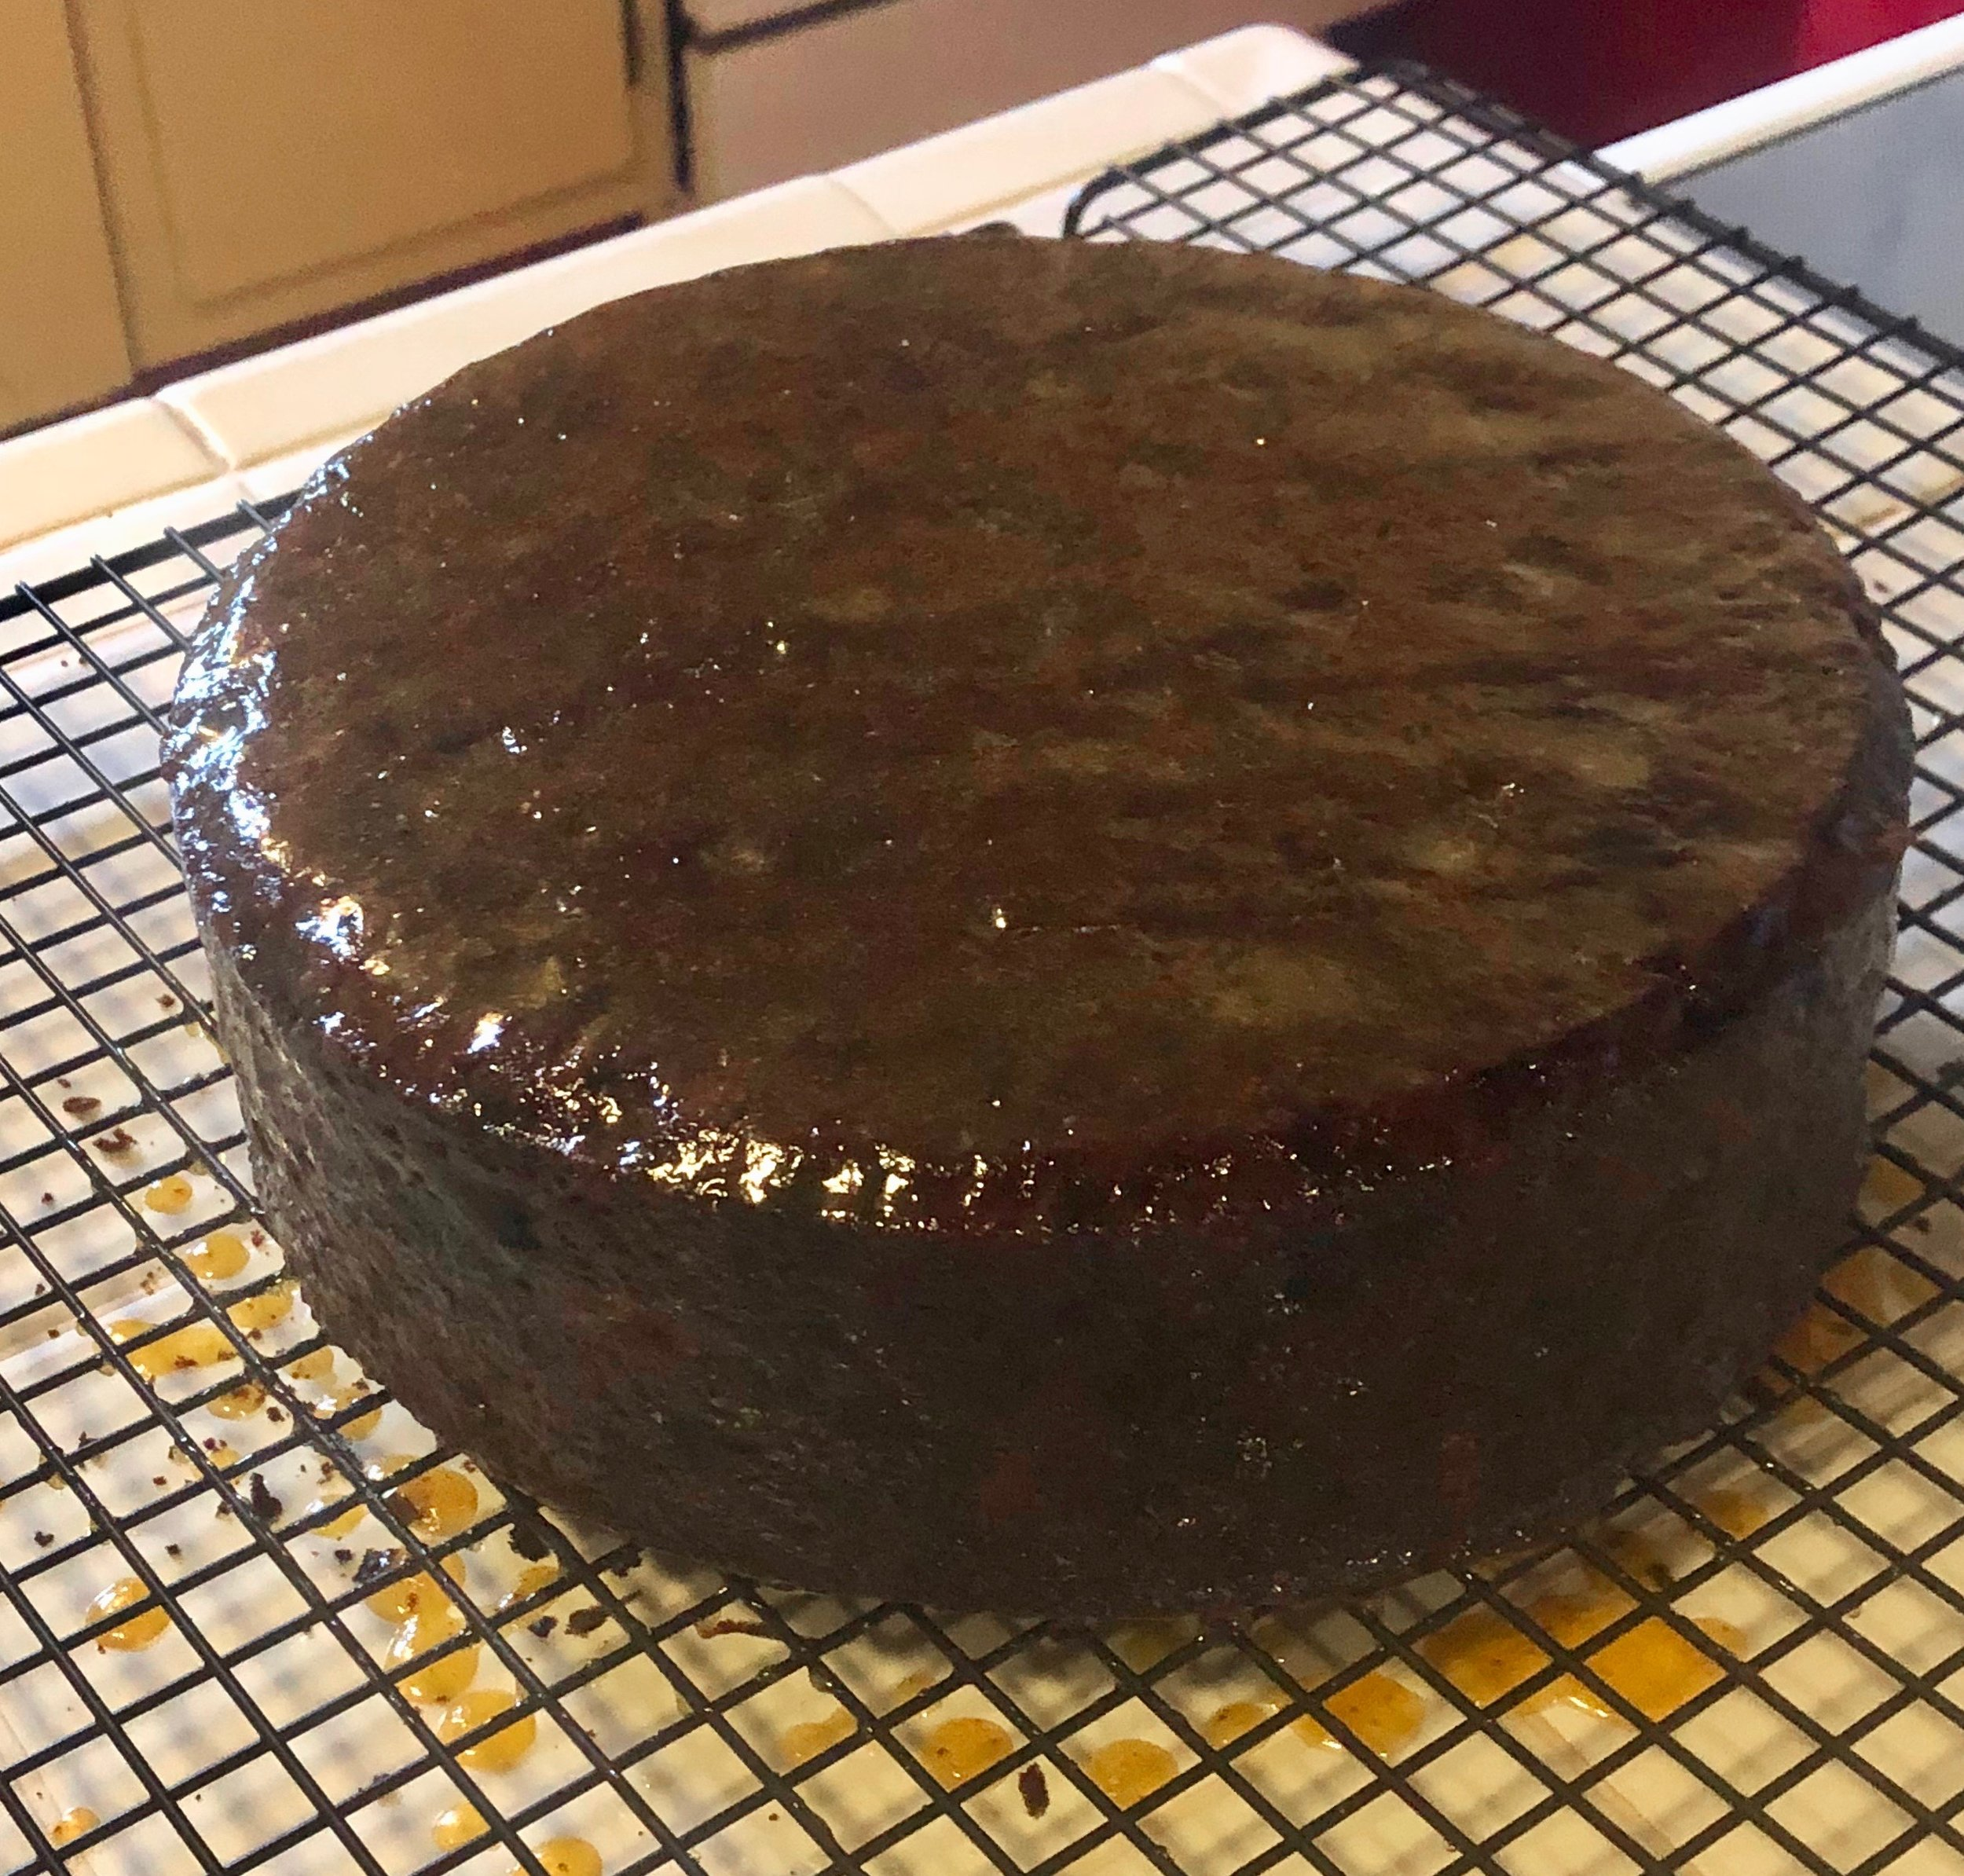 After the glaze has set this luscious fruitcake is ready to go.